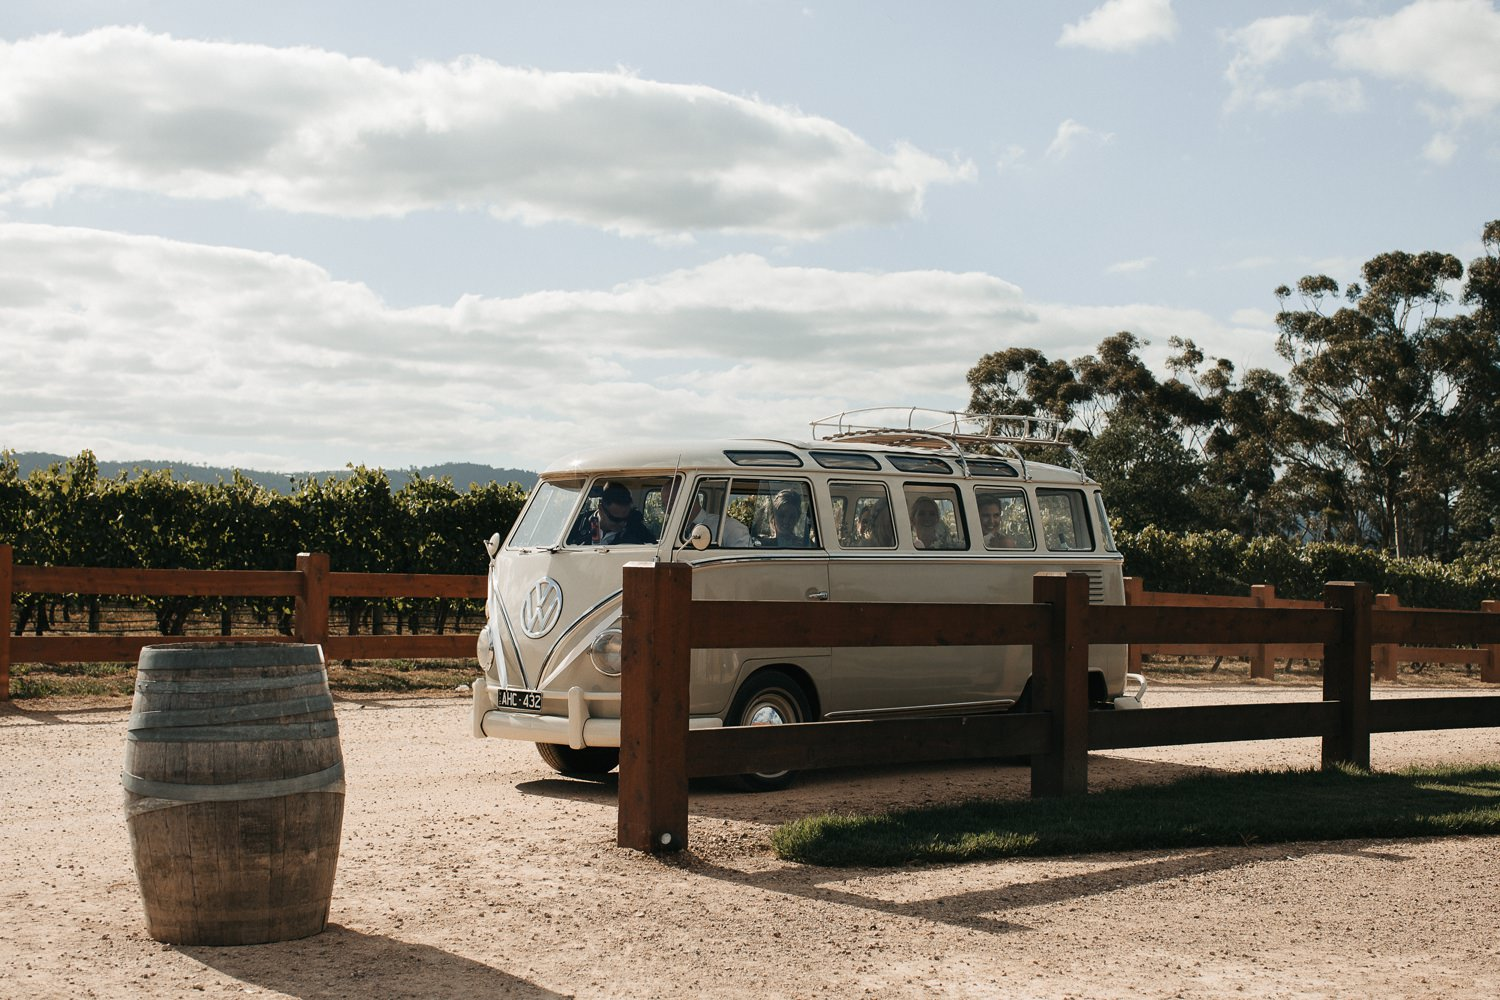 zonzo-estate-yarra-valley-wedding-photographer_0044.jpg